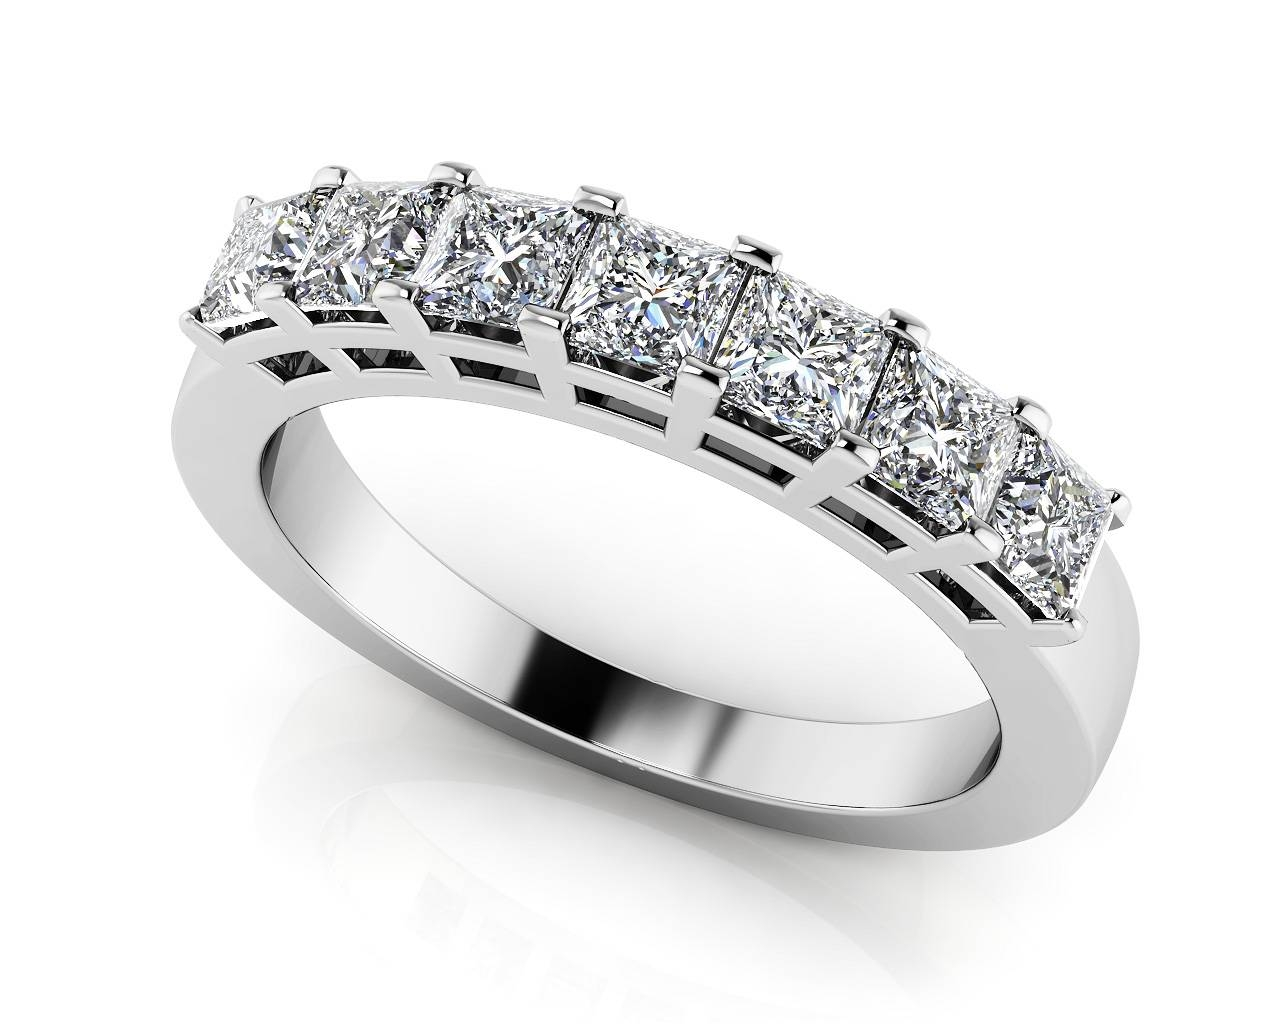 Design Your Own Diamond Anniversary Ring & Eternity Ring Within Most Up To Date Platinum Anniversary Rings (View 10 of 25)